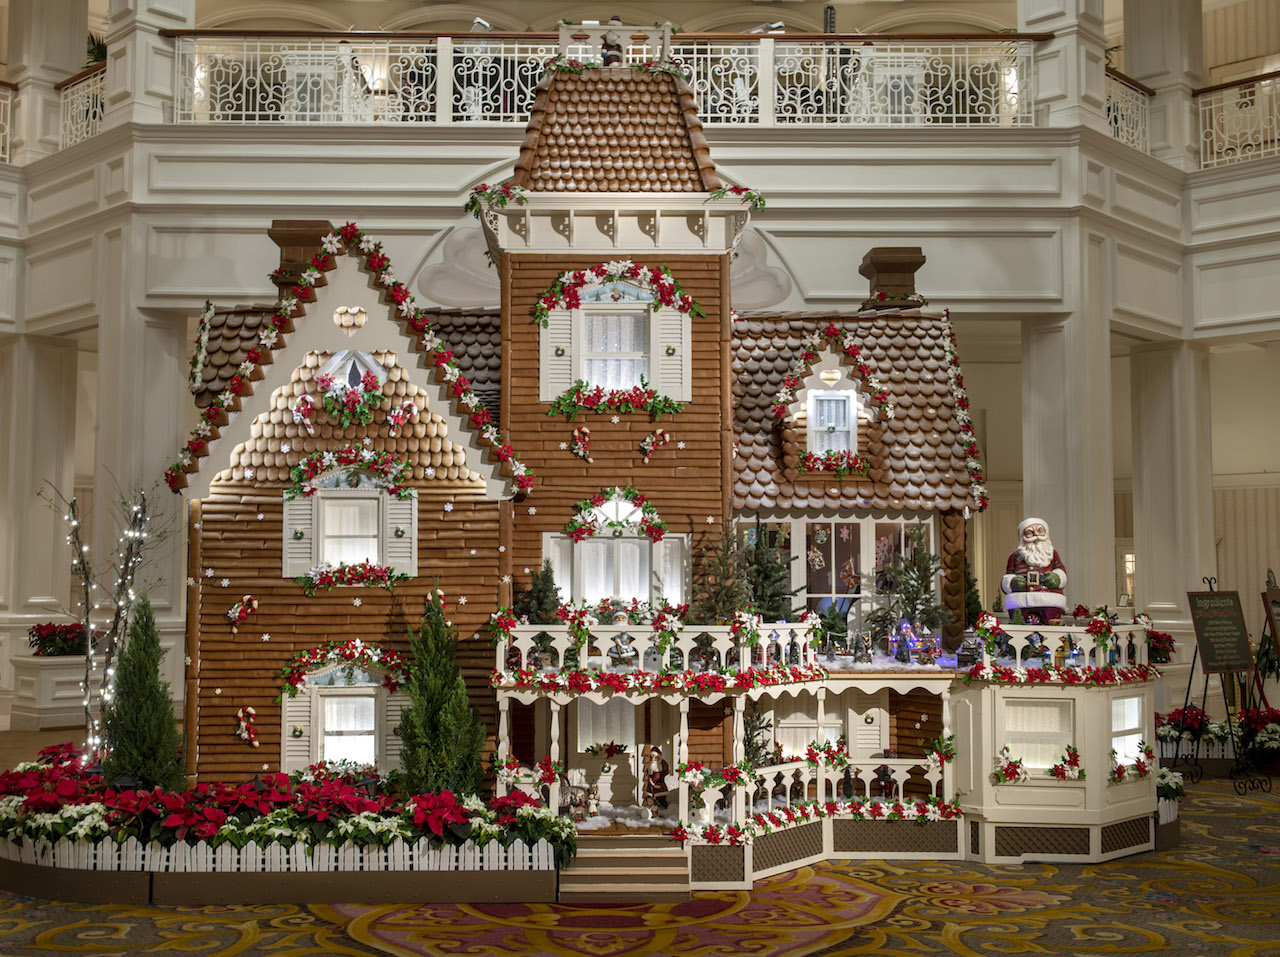 VIDEO: Watch as Disney's Grand Floridian Resort Pastry Chefs Build the 20th Annual Life-Sized Gingerbread House